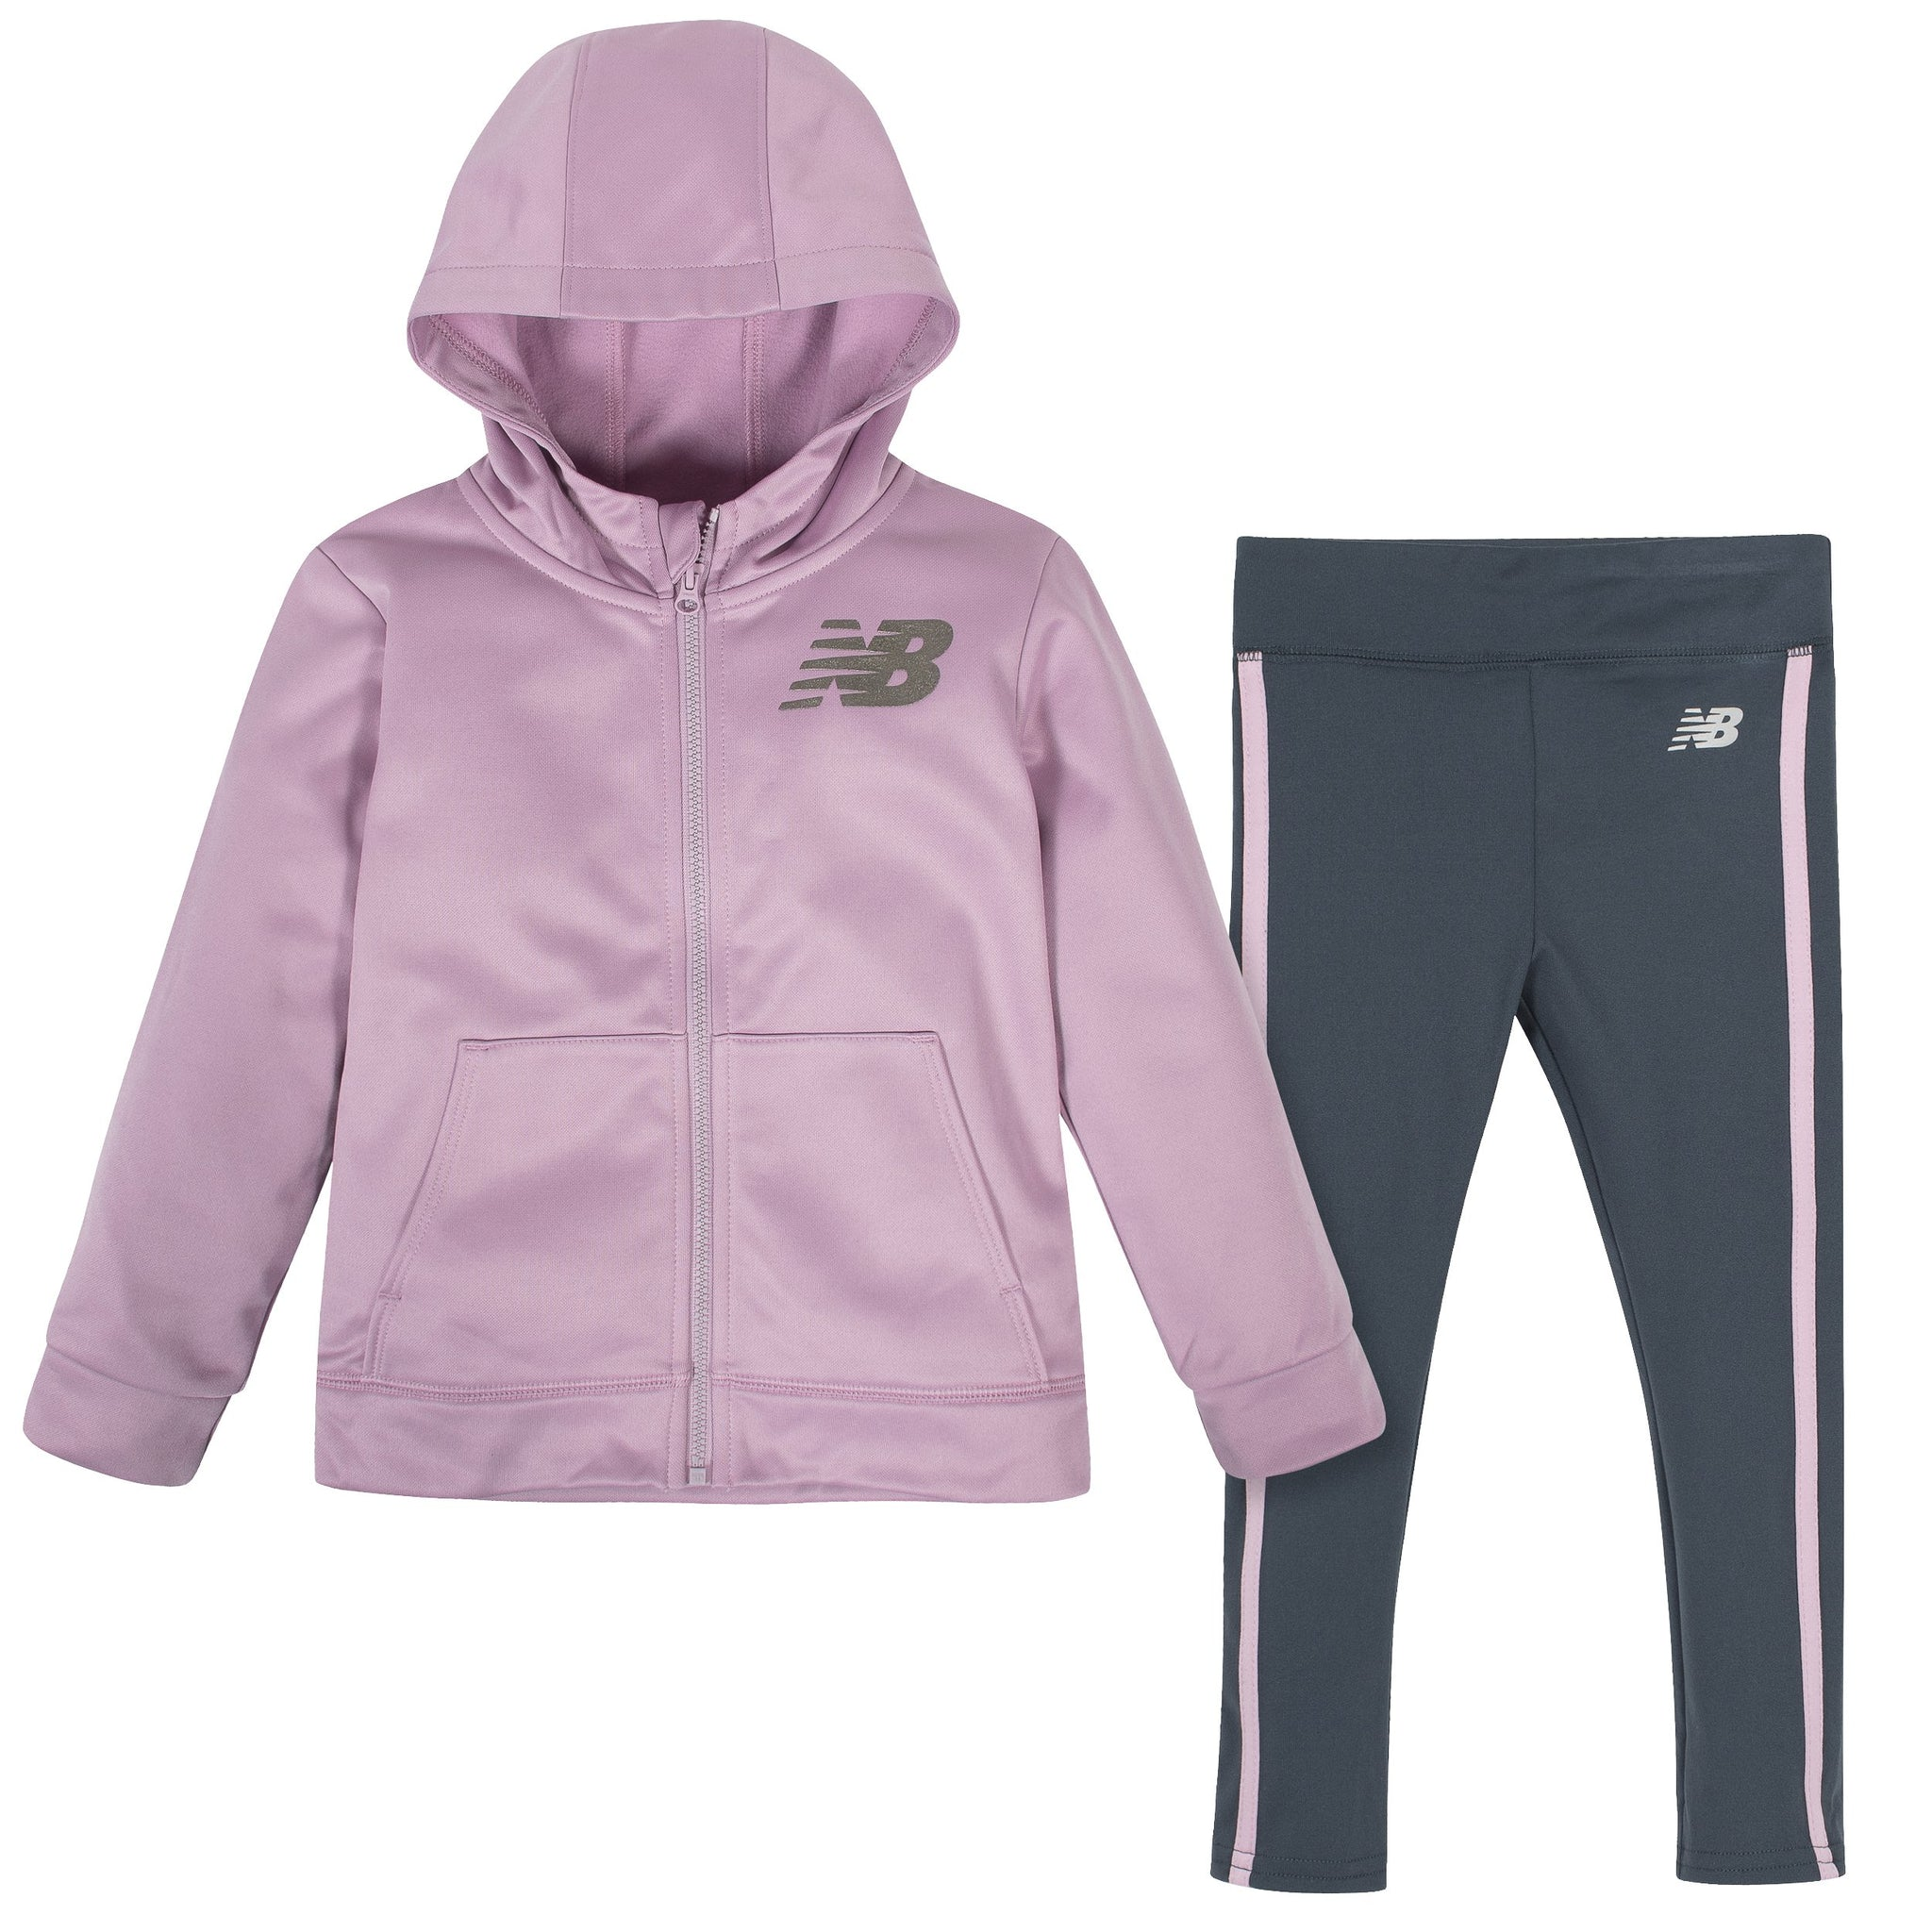 2-Piece New Balance Girls' Oxygen Pink and Thunder Hooded Jacket and Tight Set